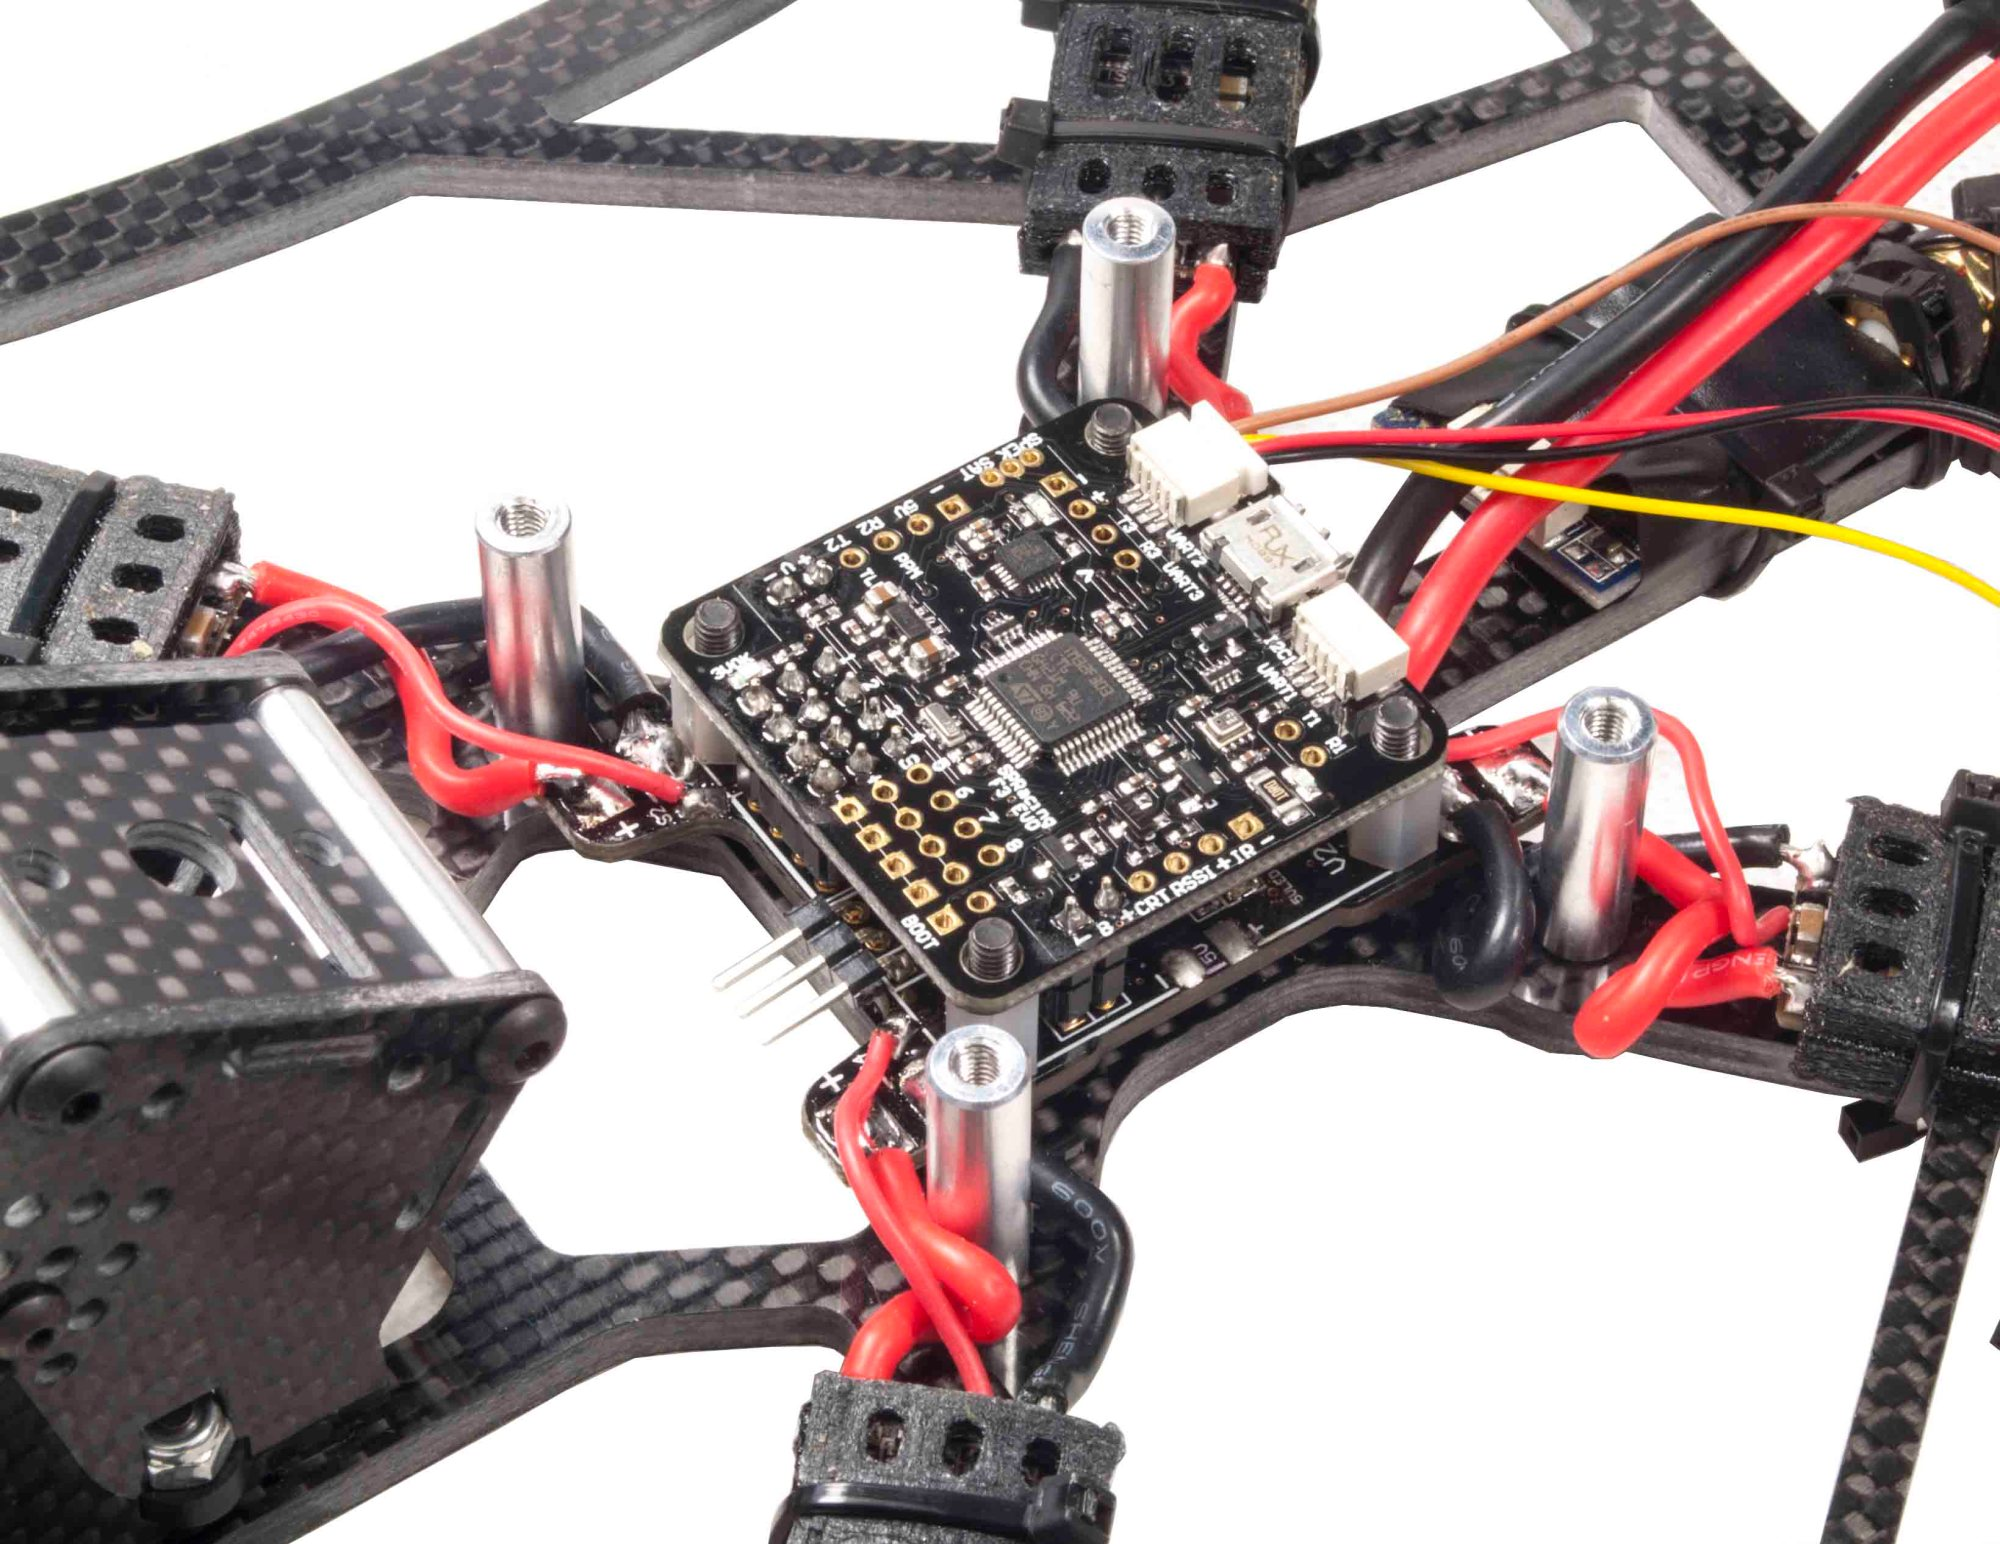 hight resolution of rjx sp racing f3 evo flight controller with pdb power distribution board